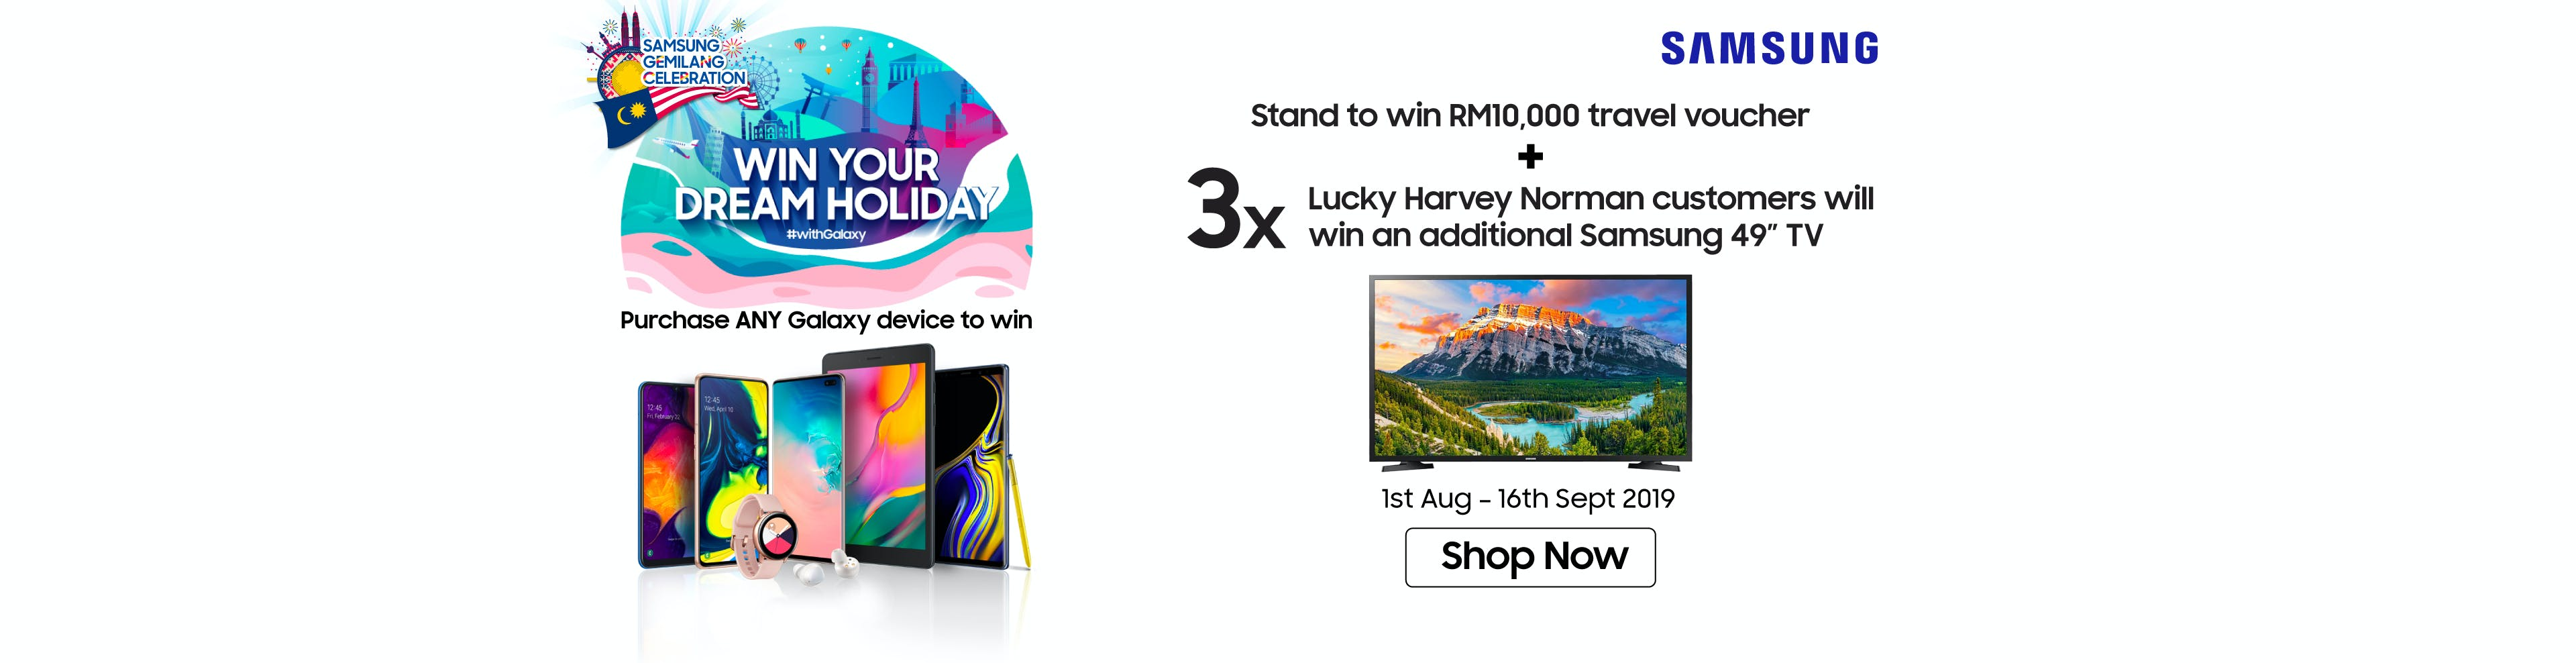 Samsung Merdeka Win Your Dream Holiday